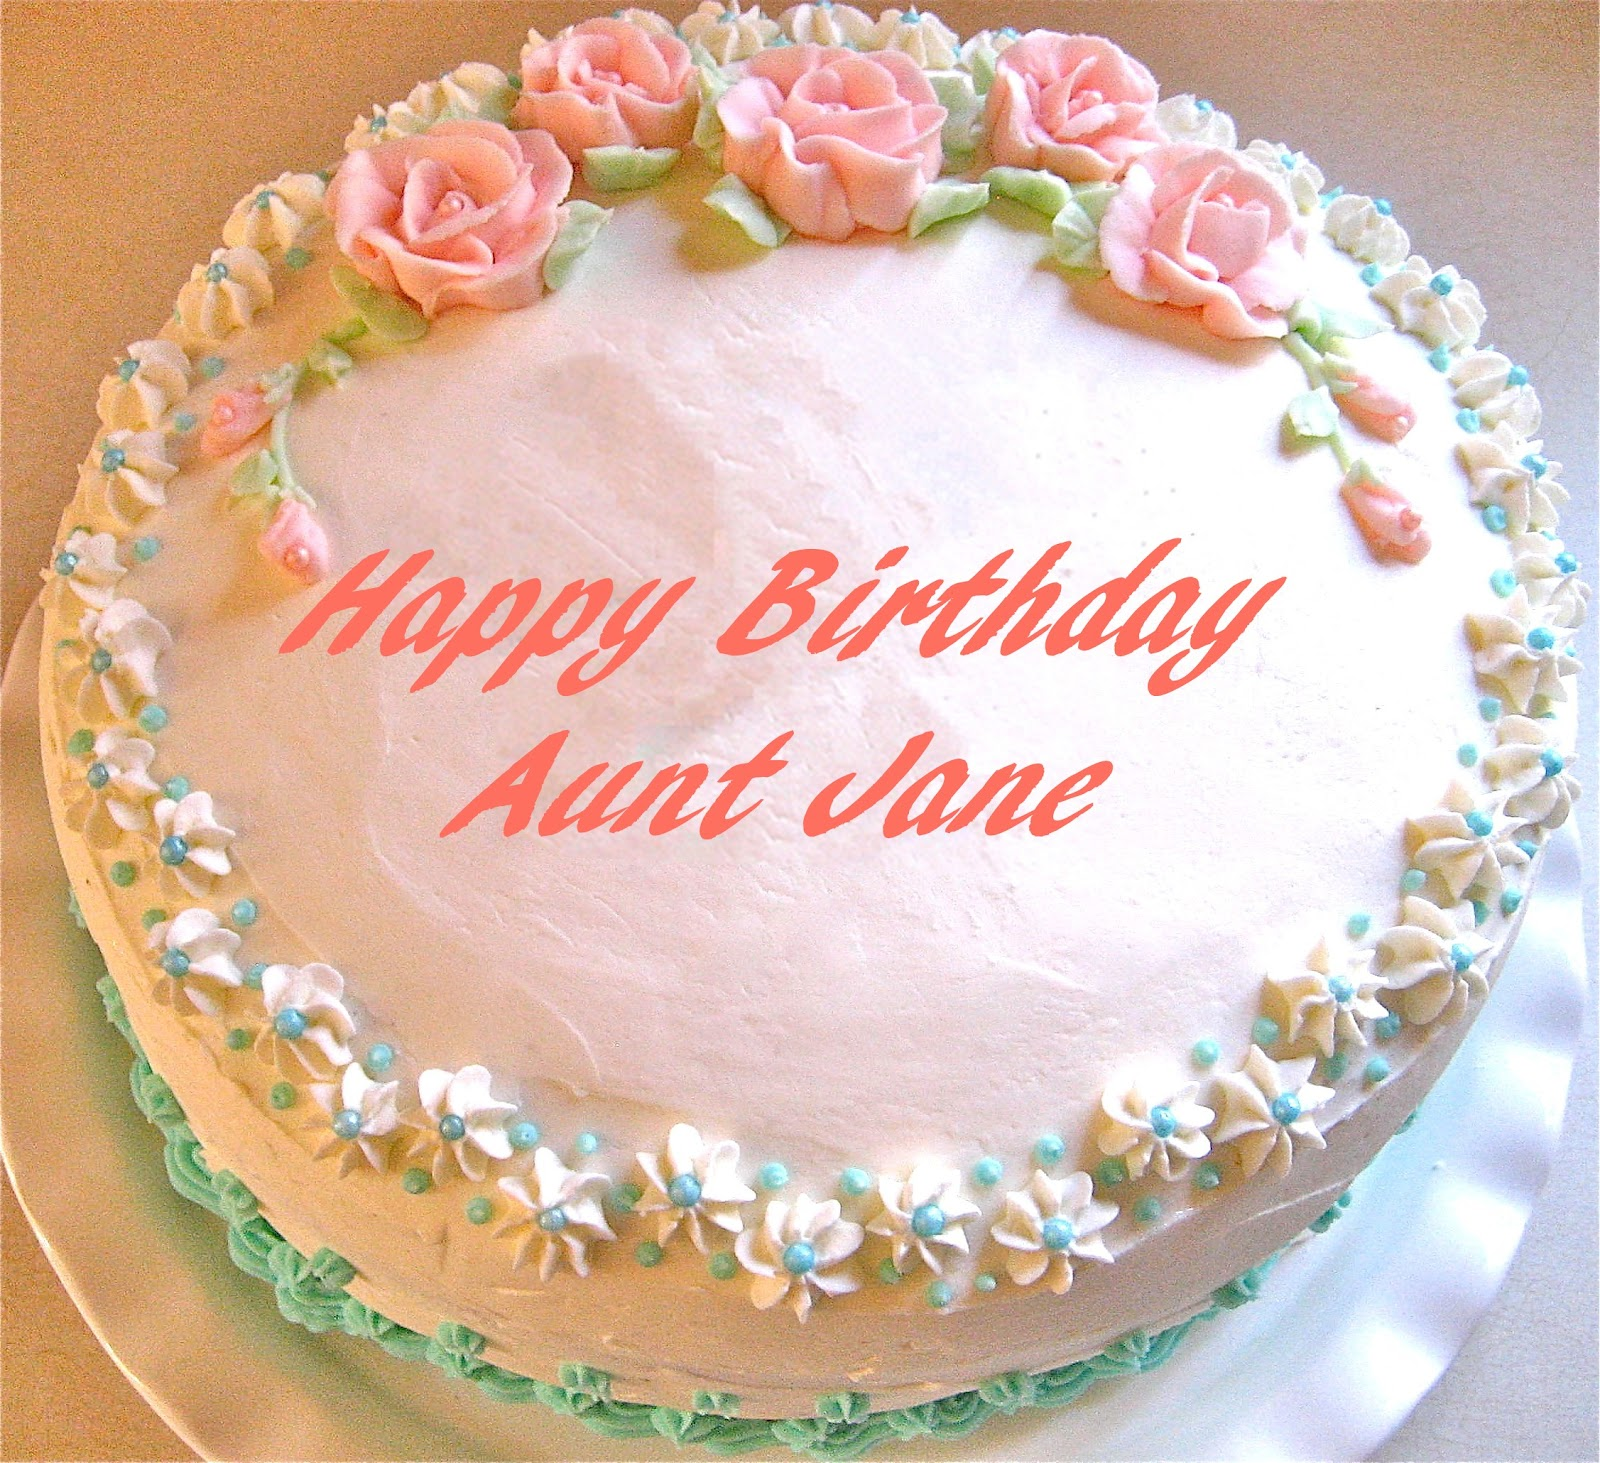 Birthday Cake Images For Aunt : Not Your Typical Trophy Wife: Happy Birthday Aunt Jane!